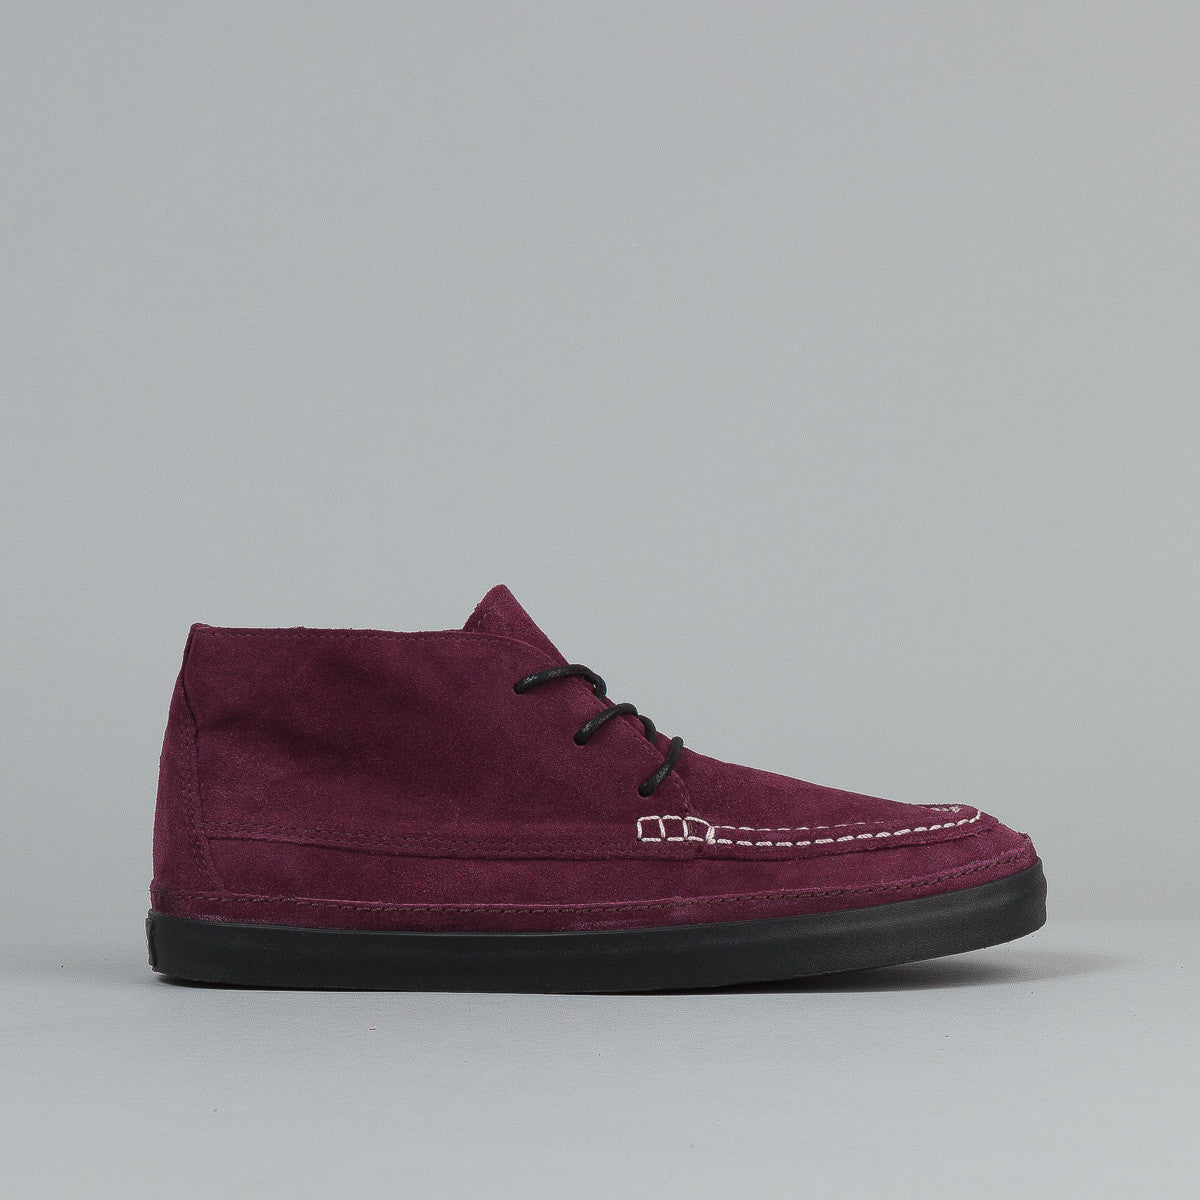 Vans Mesa Moc CA Shoes